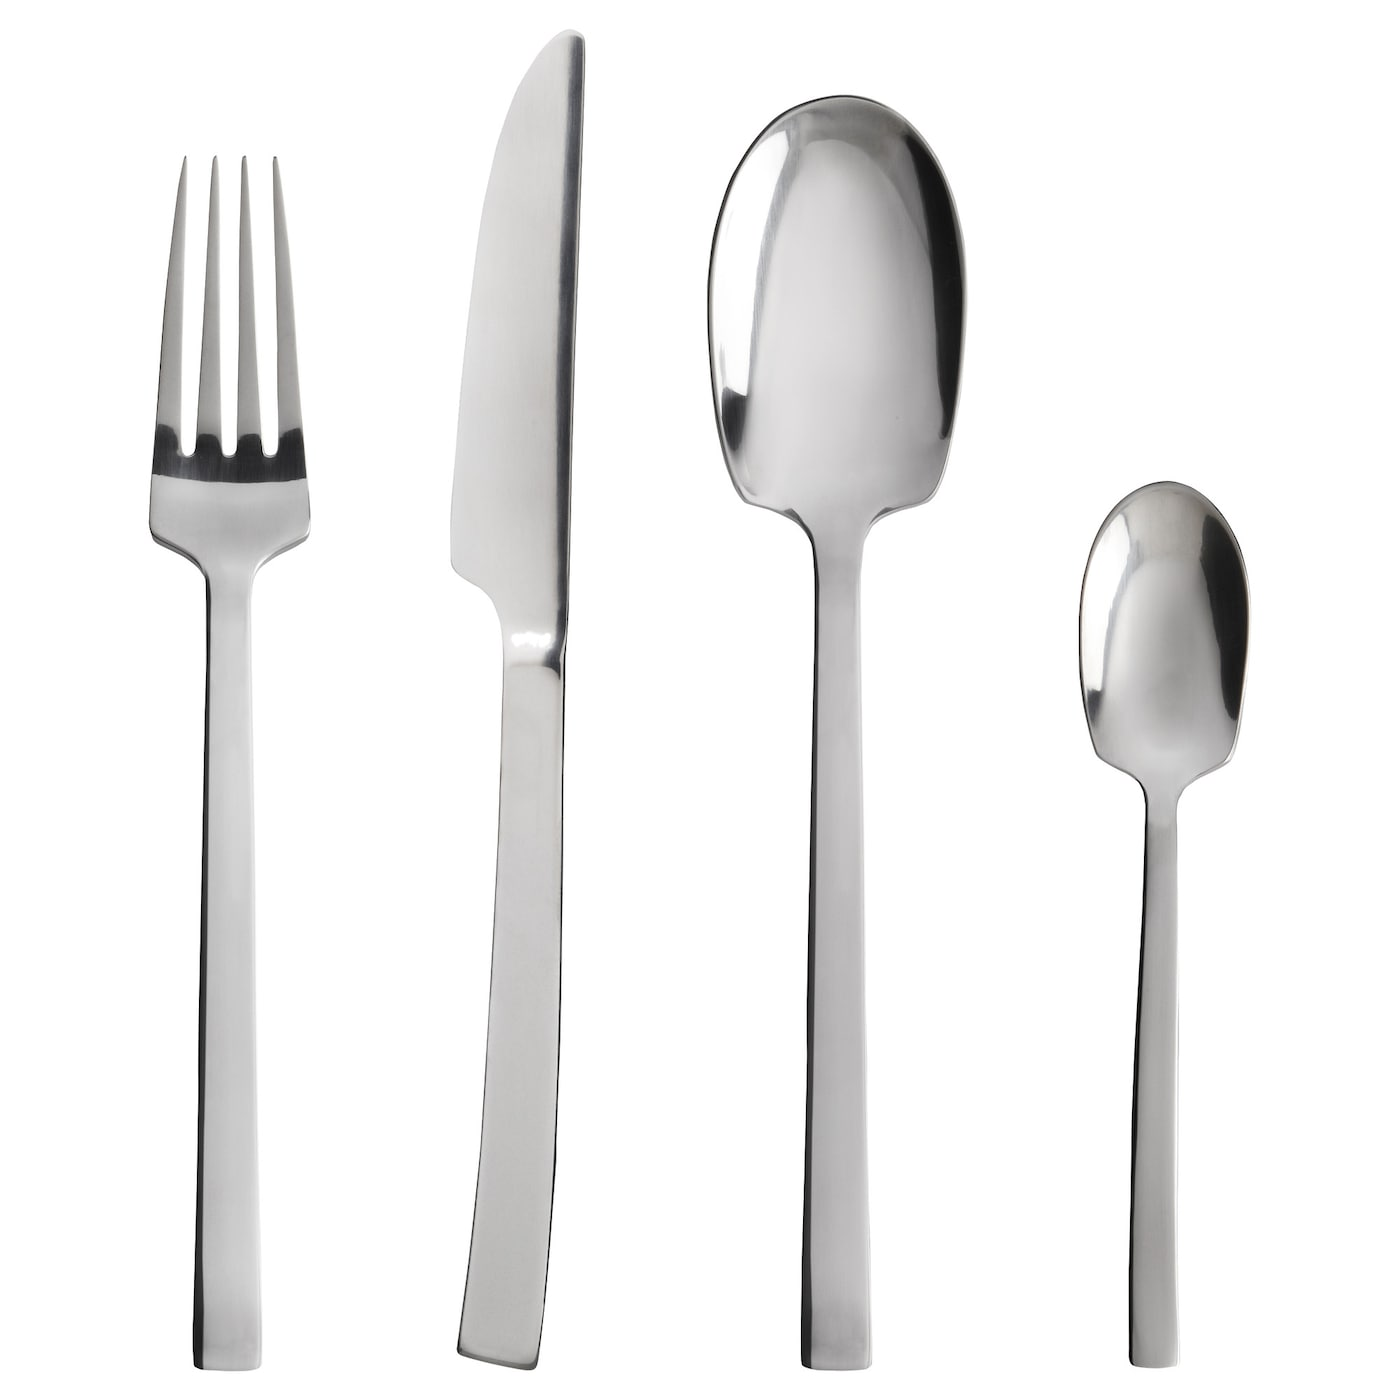 IKEA SMAKGLAD 24-piece cutlery set